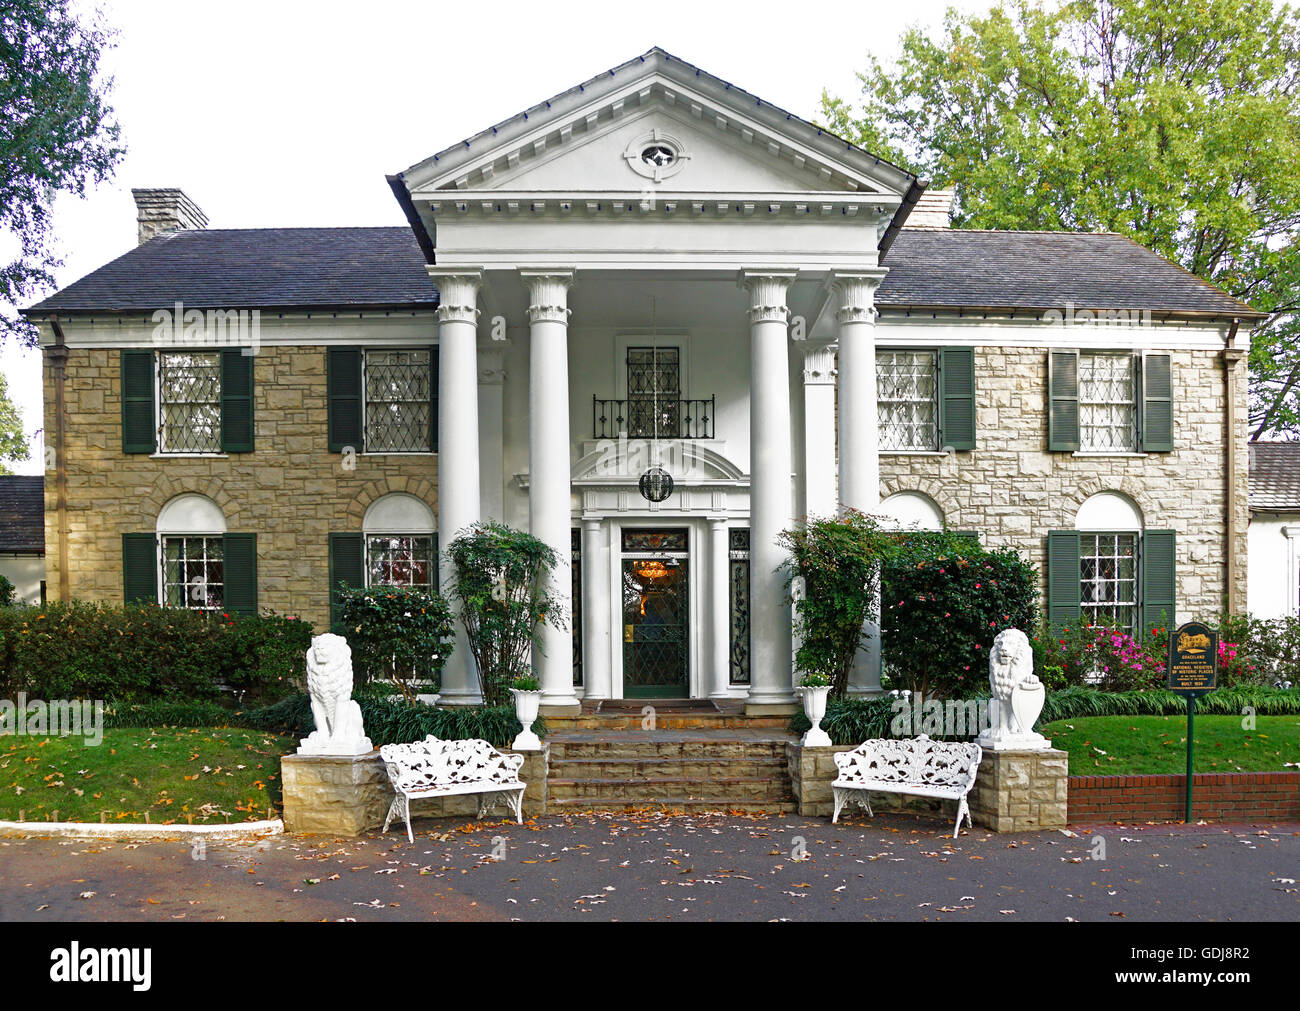 Elvis Presley's home, Graceland, in Memphis, Tennessee. - Stock Image